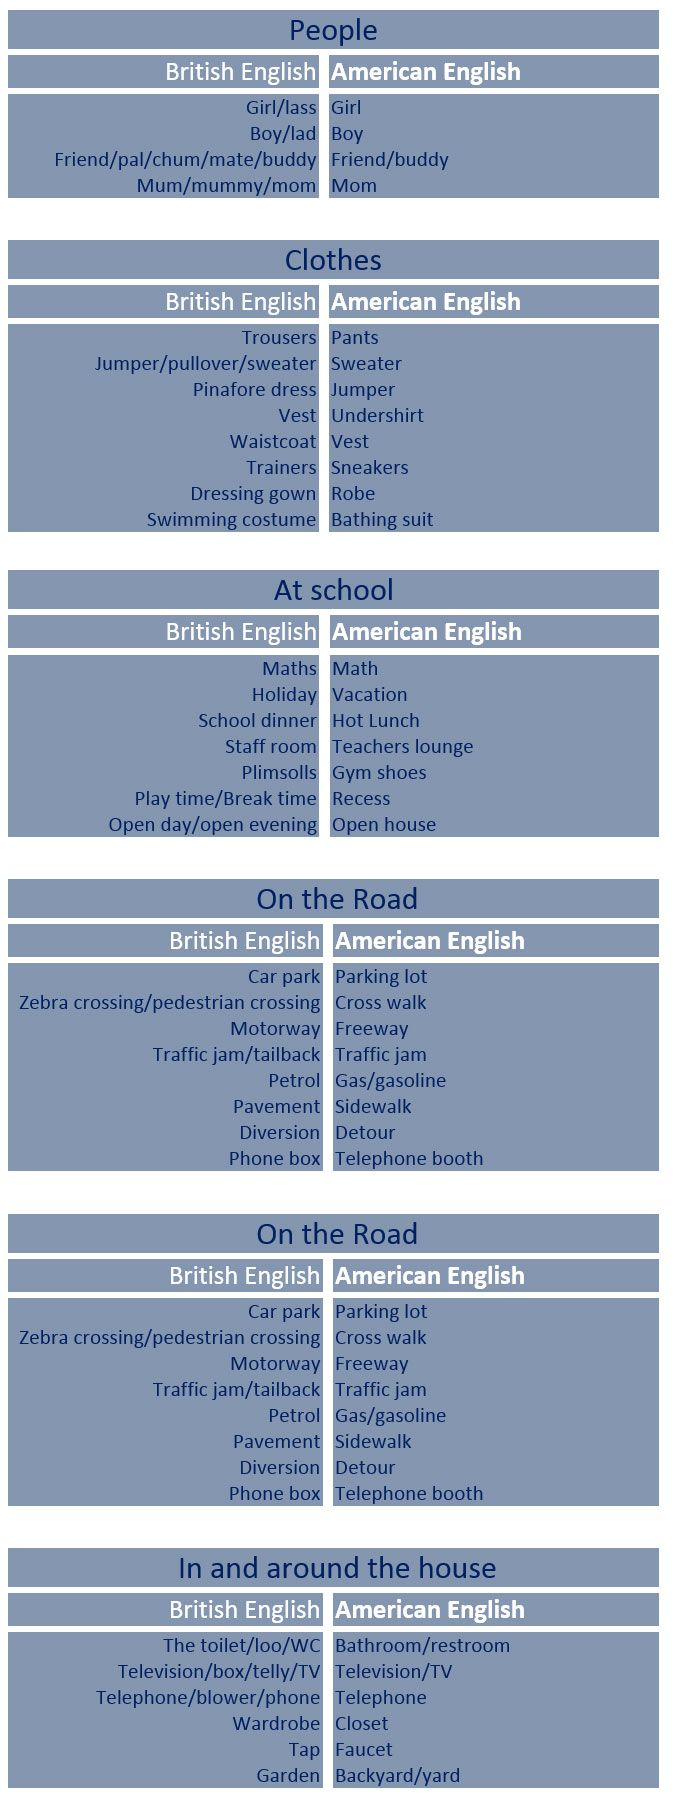 Differences Between American and British English - learn English,vocabulary,american,british,english